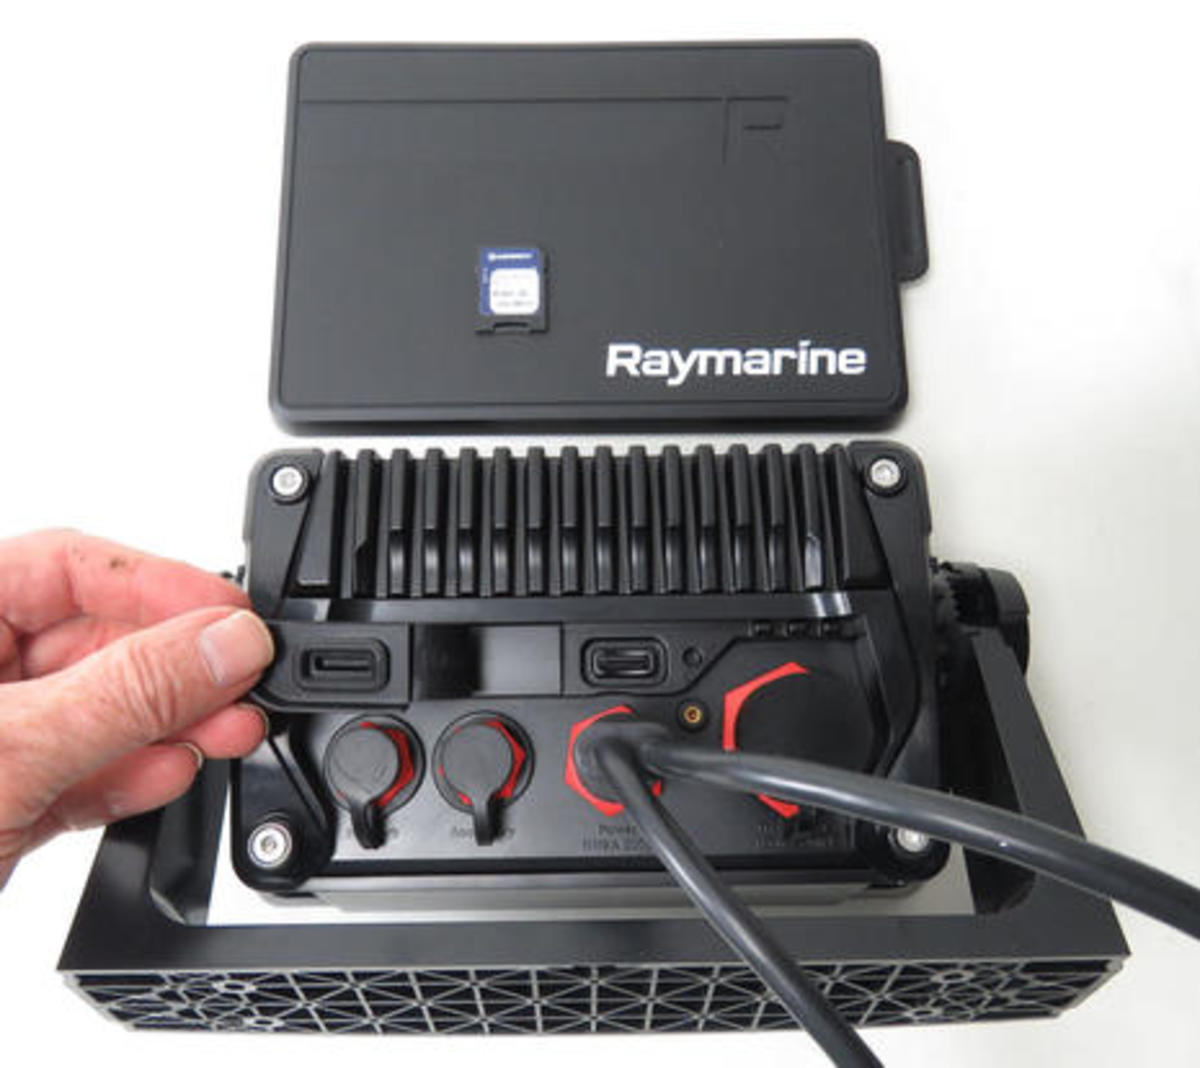 Raymarine_Axiom_7_bale mount backside_cPanbo.jpg